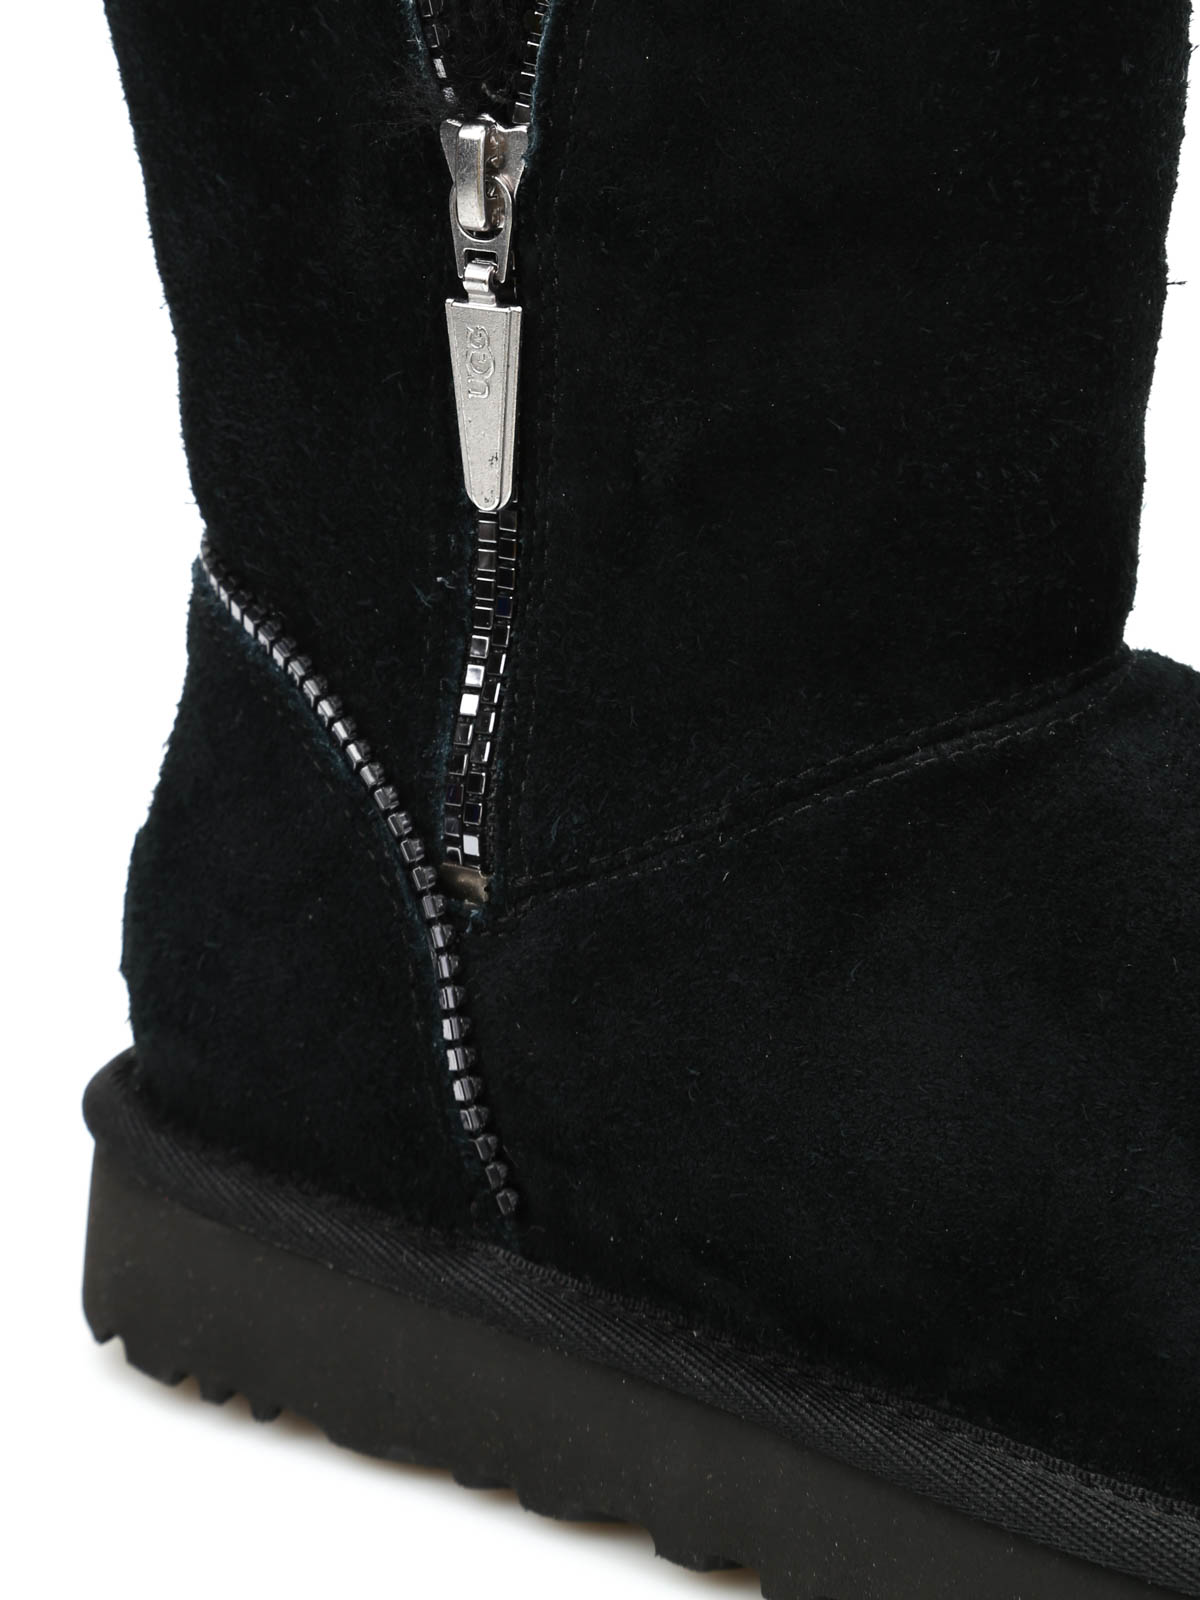 886ffe21fd0 Ugg - Florence zipped ankle boots - ankle boots - 1013165 W / BLK